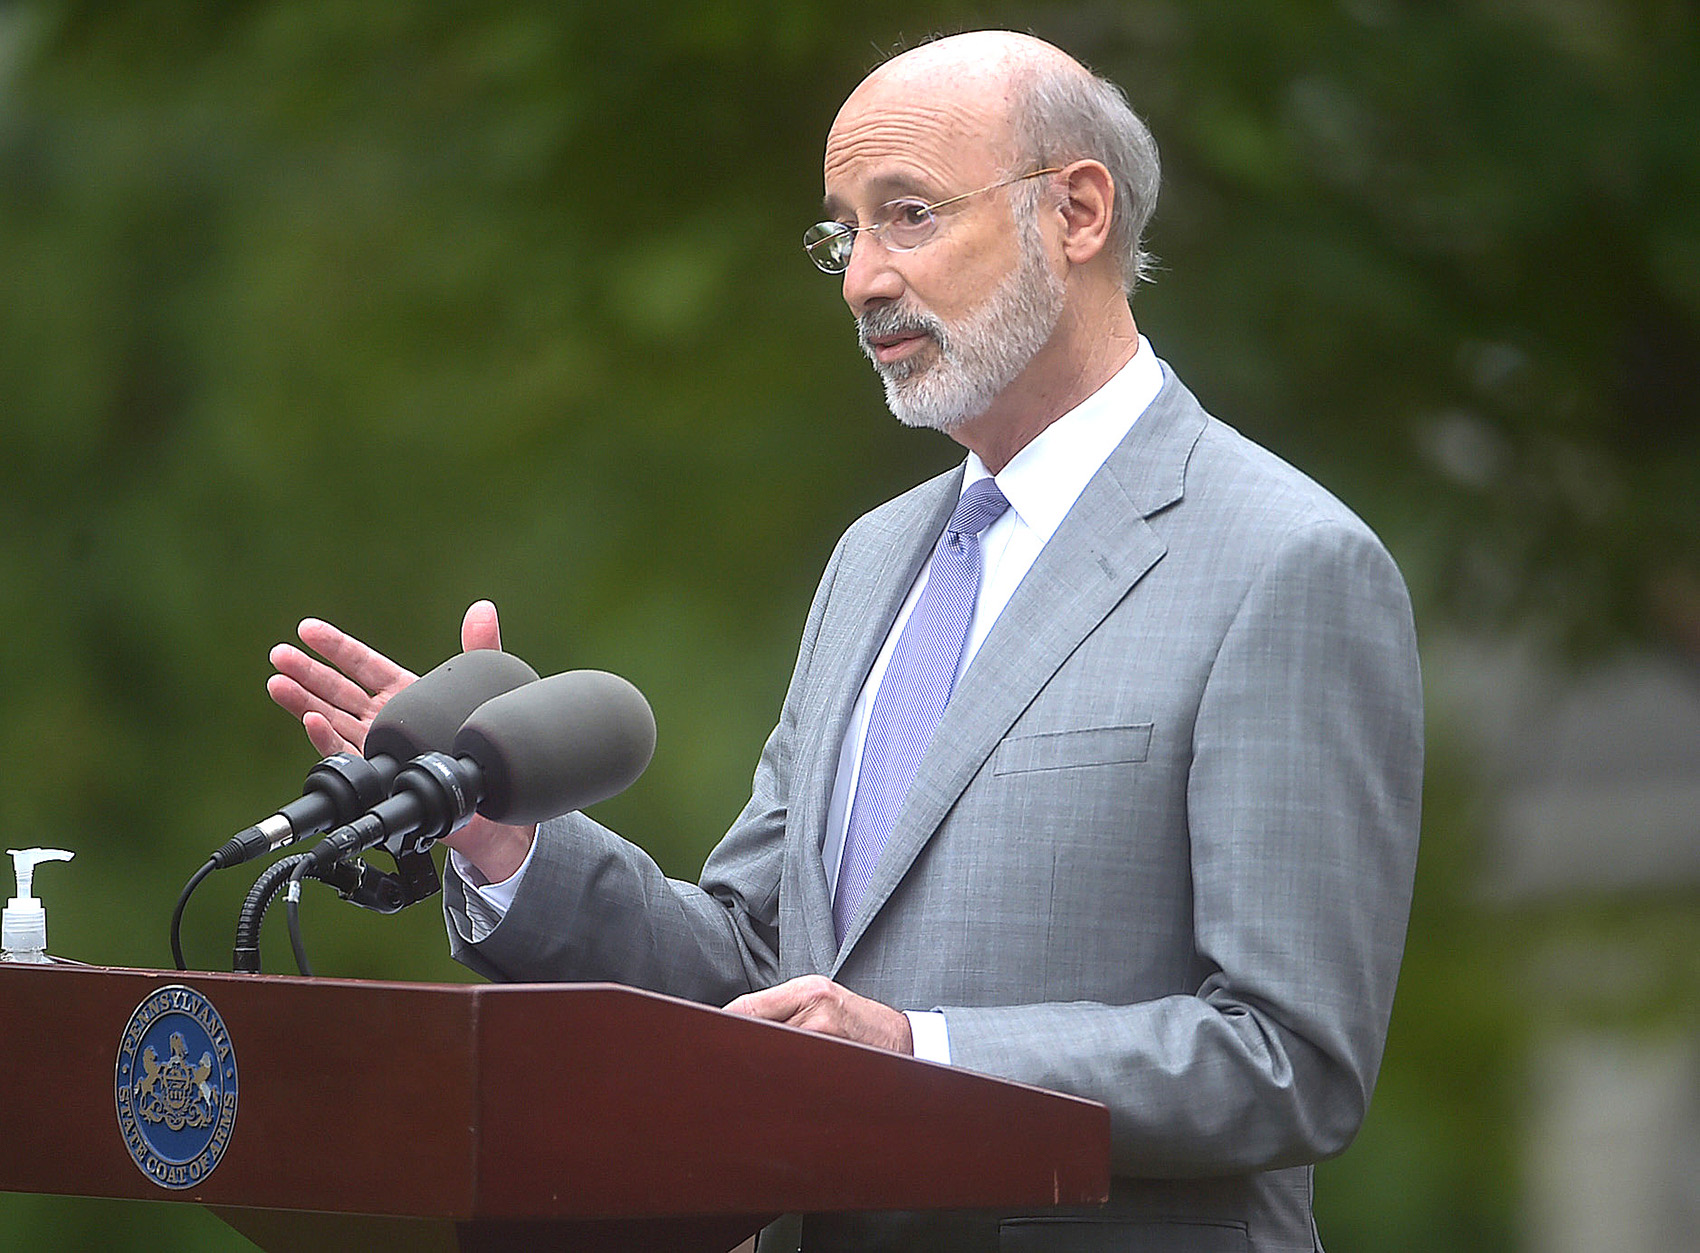 Pennsylvania Gov. Tom Wolf speaks during a news conference in Malvern, Pennsylvania, on October 1, 2020.